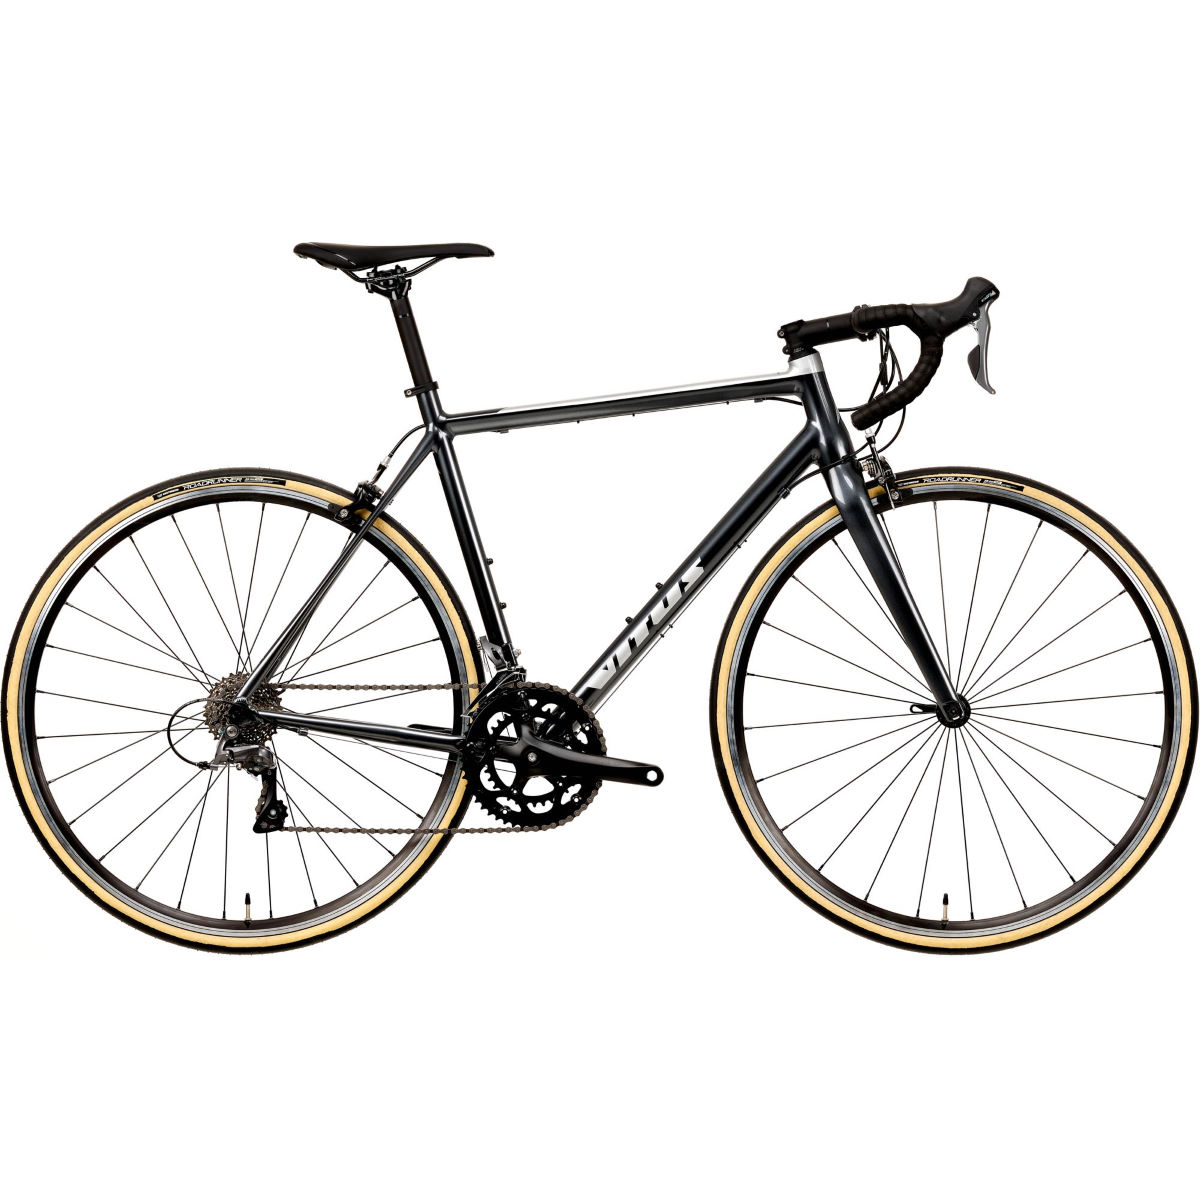 Vitus Vitus Razor Road Bike (Claris - 2020)   Road Bikes